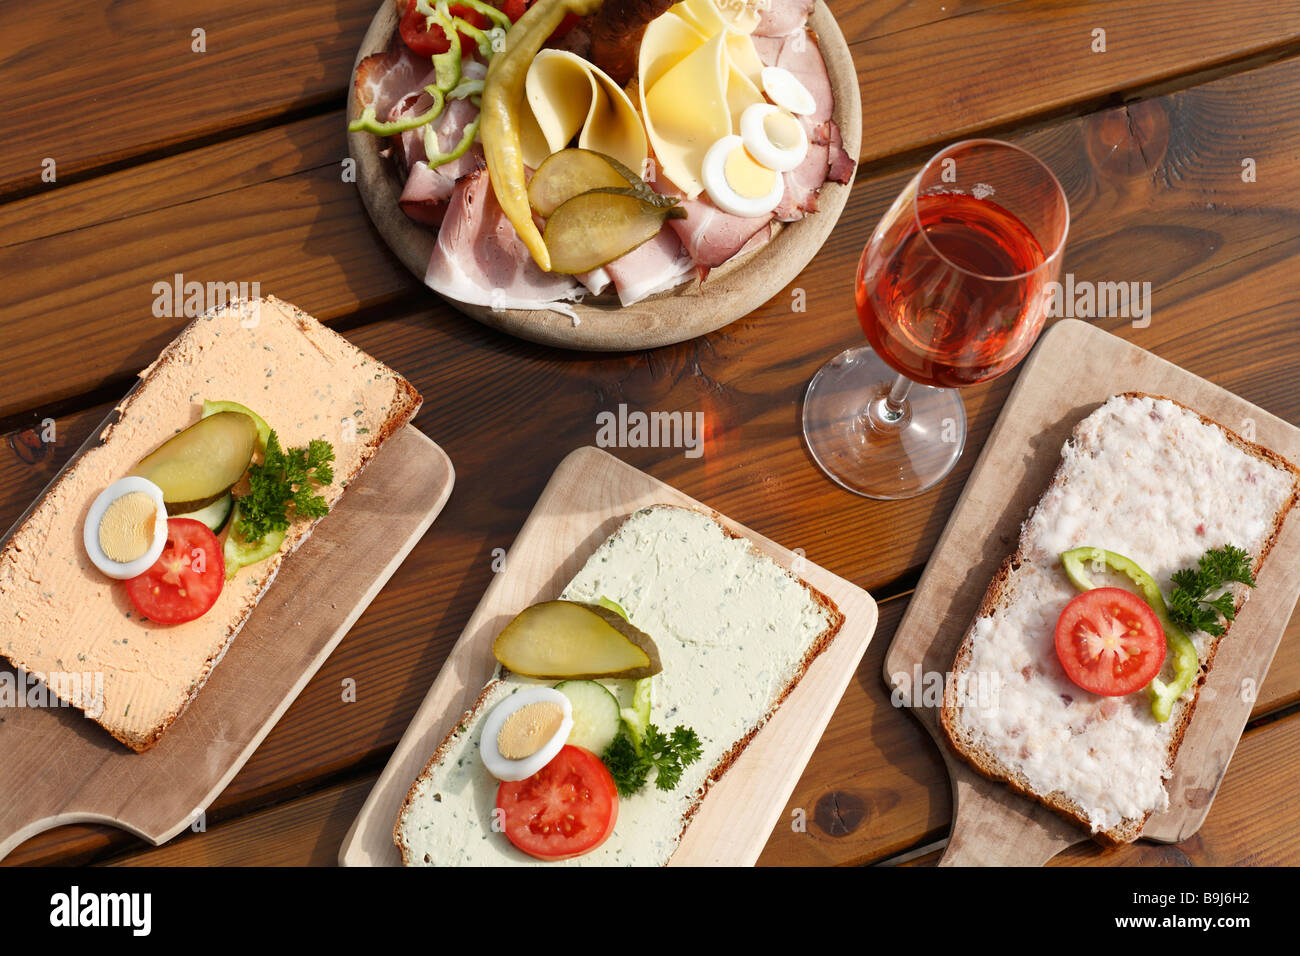 Sandwiches and Brettljause, hearty snack, in Buschenschank, bar, Styria, Austria, Europe - Stock Image